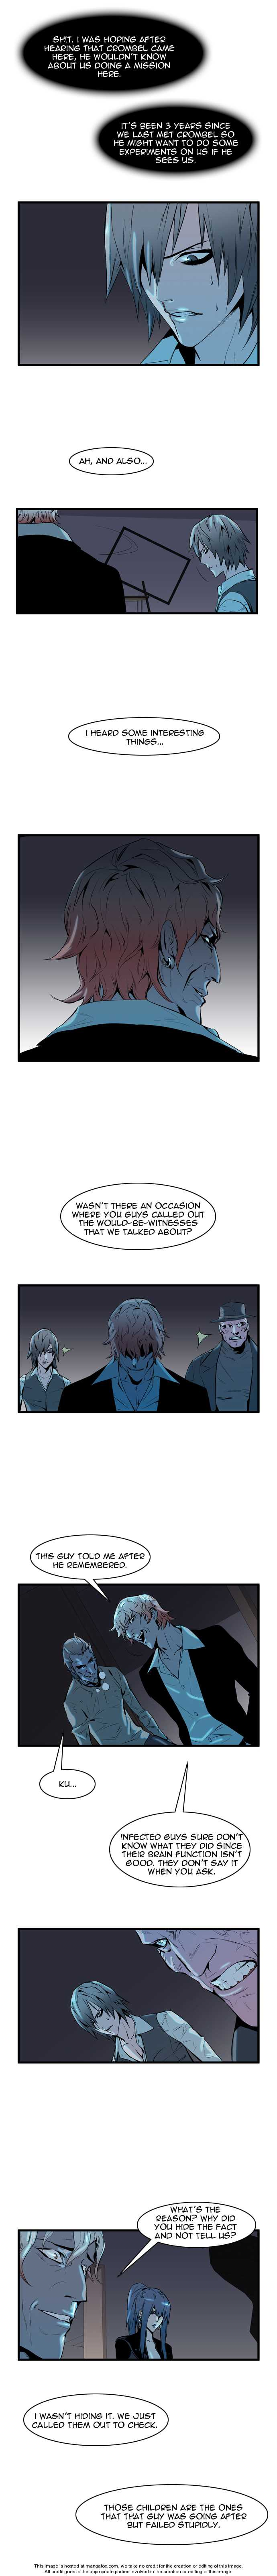 Noblesse 61 Page 3